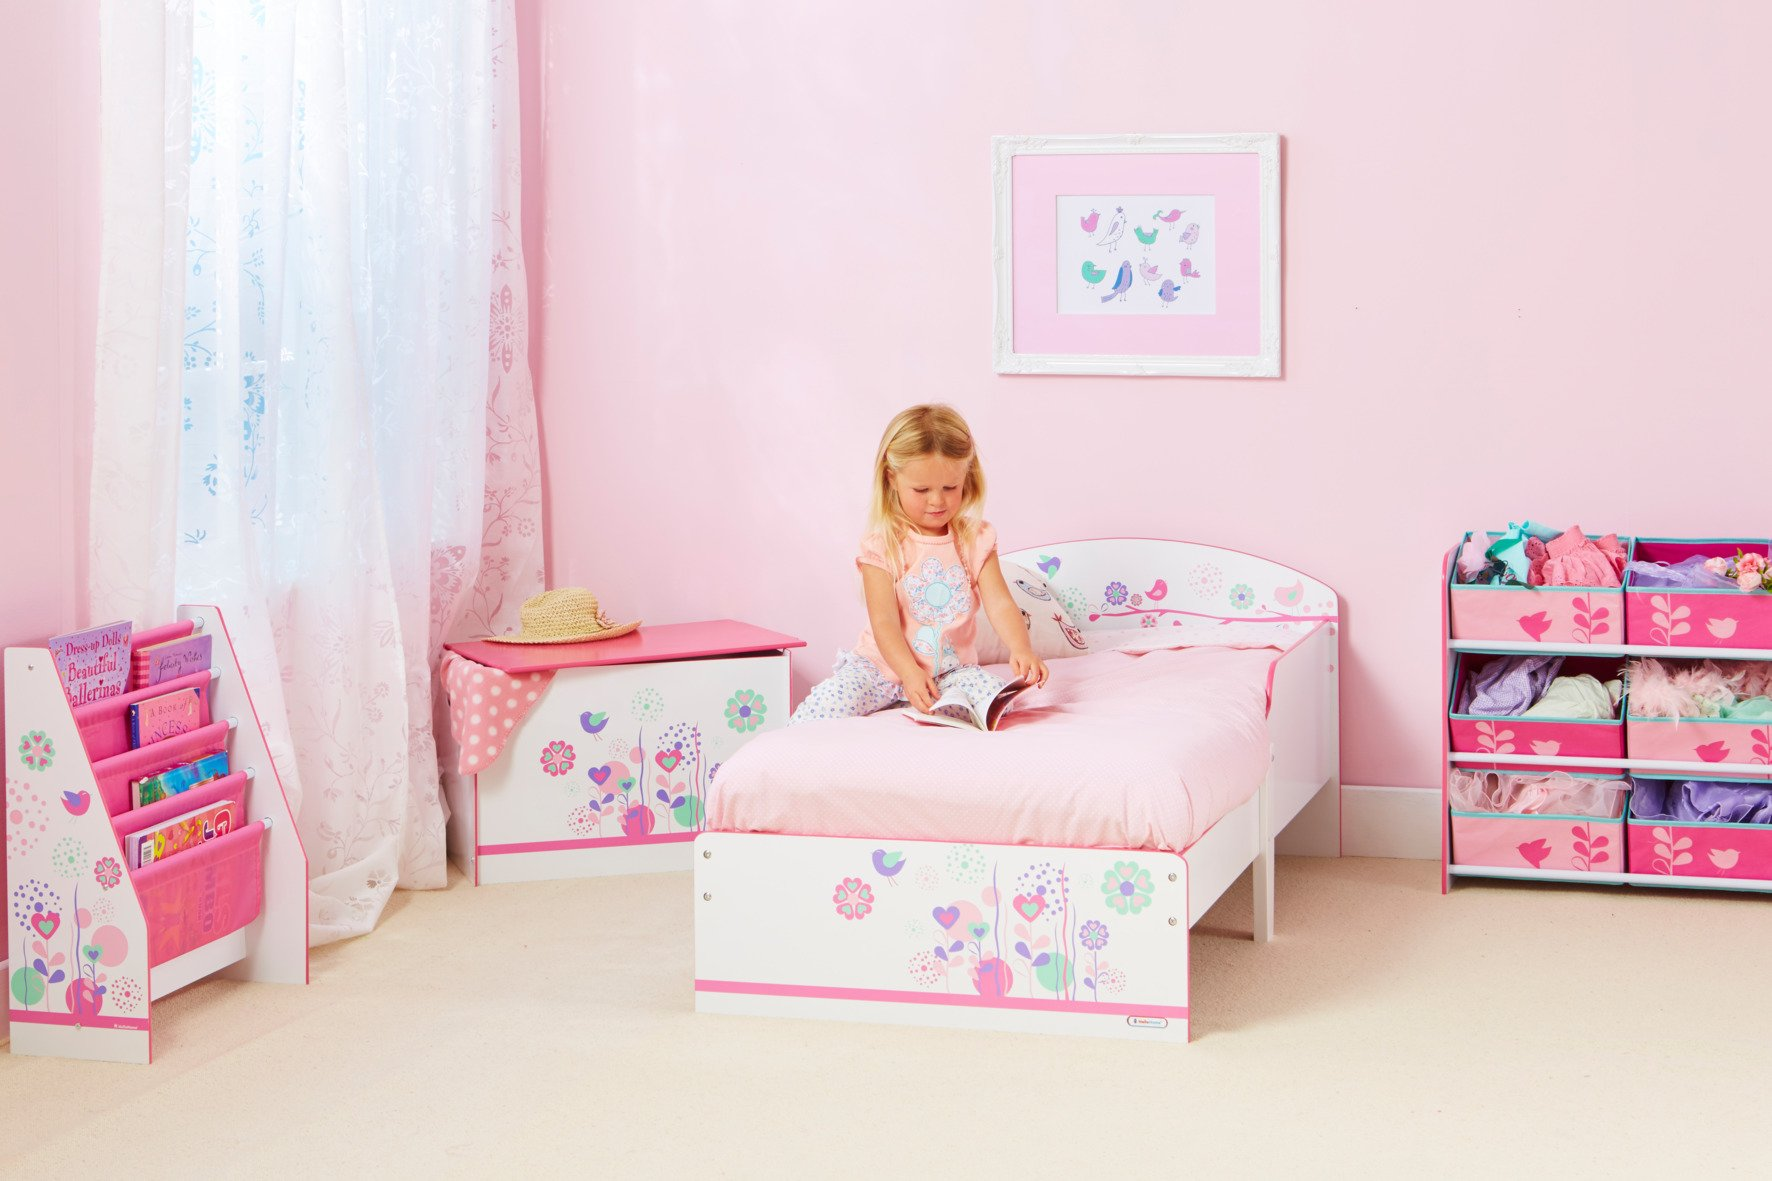 Flowers and Birds Kids Toddler Bed by HelloHome  Ideal transition from cot to bed - make the move to her first big bed magical with the Flowers and Birds toddler bed from HelloHome Takes cot bed size mattress - 140cm (l) x 70cm (w). Mattress not included. Assembled size (h)59, (w)77, (l)142cm Suitable for 18 months to 5 years this pink kids' bed is perfect for your little toddler! 5